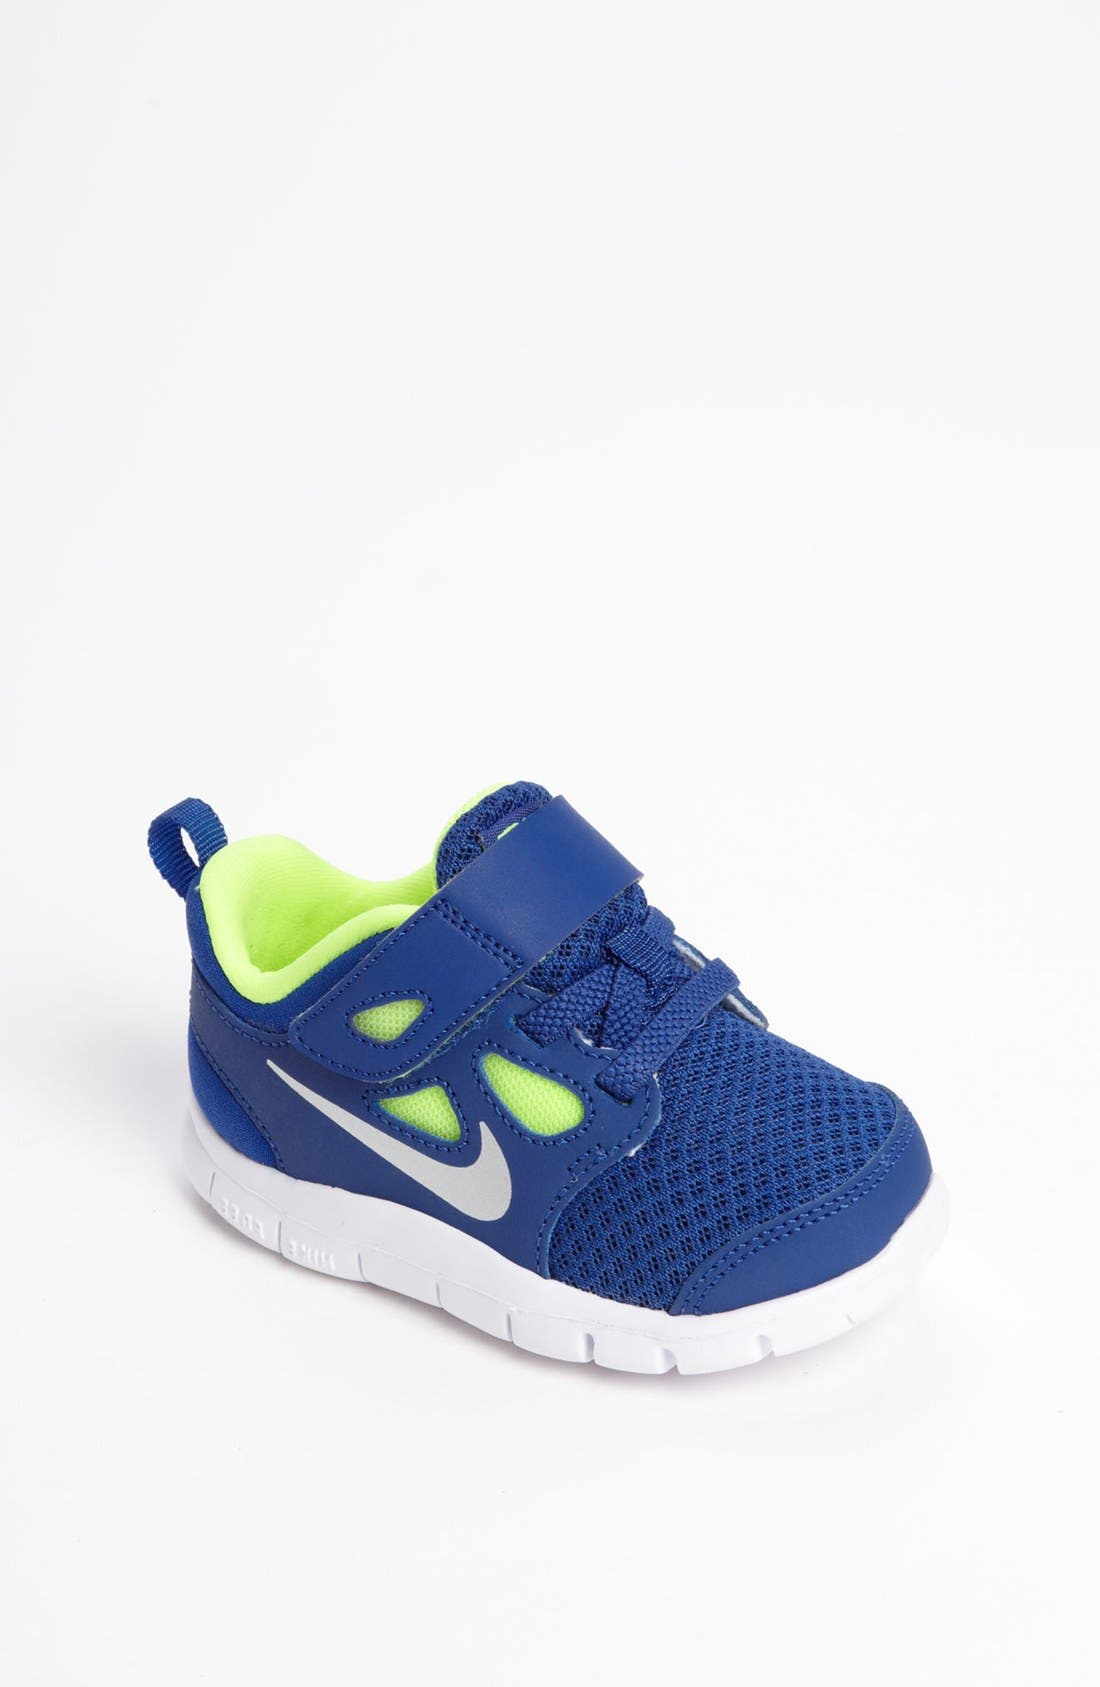 Main Image - Nike 'Free Run 5.0' Sneaker (Baby, Walker & Toddler)